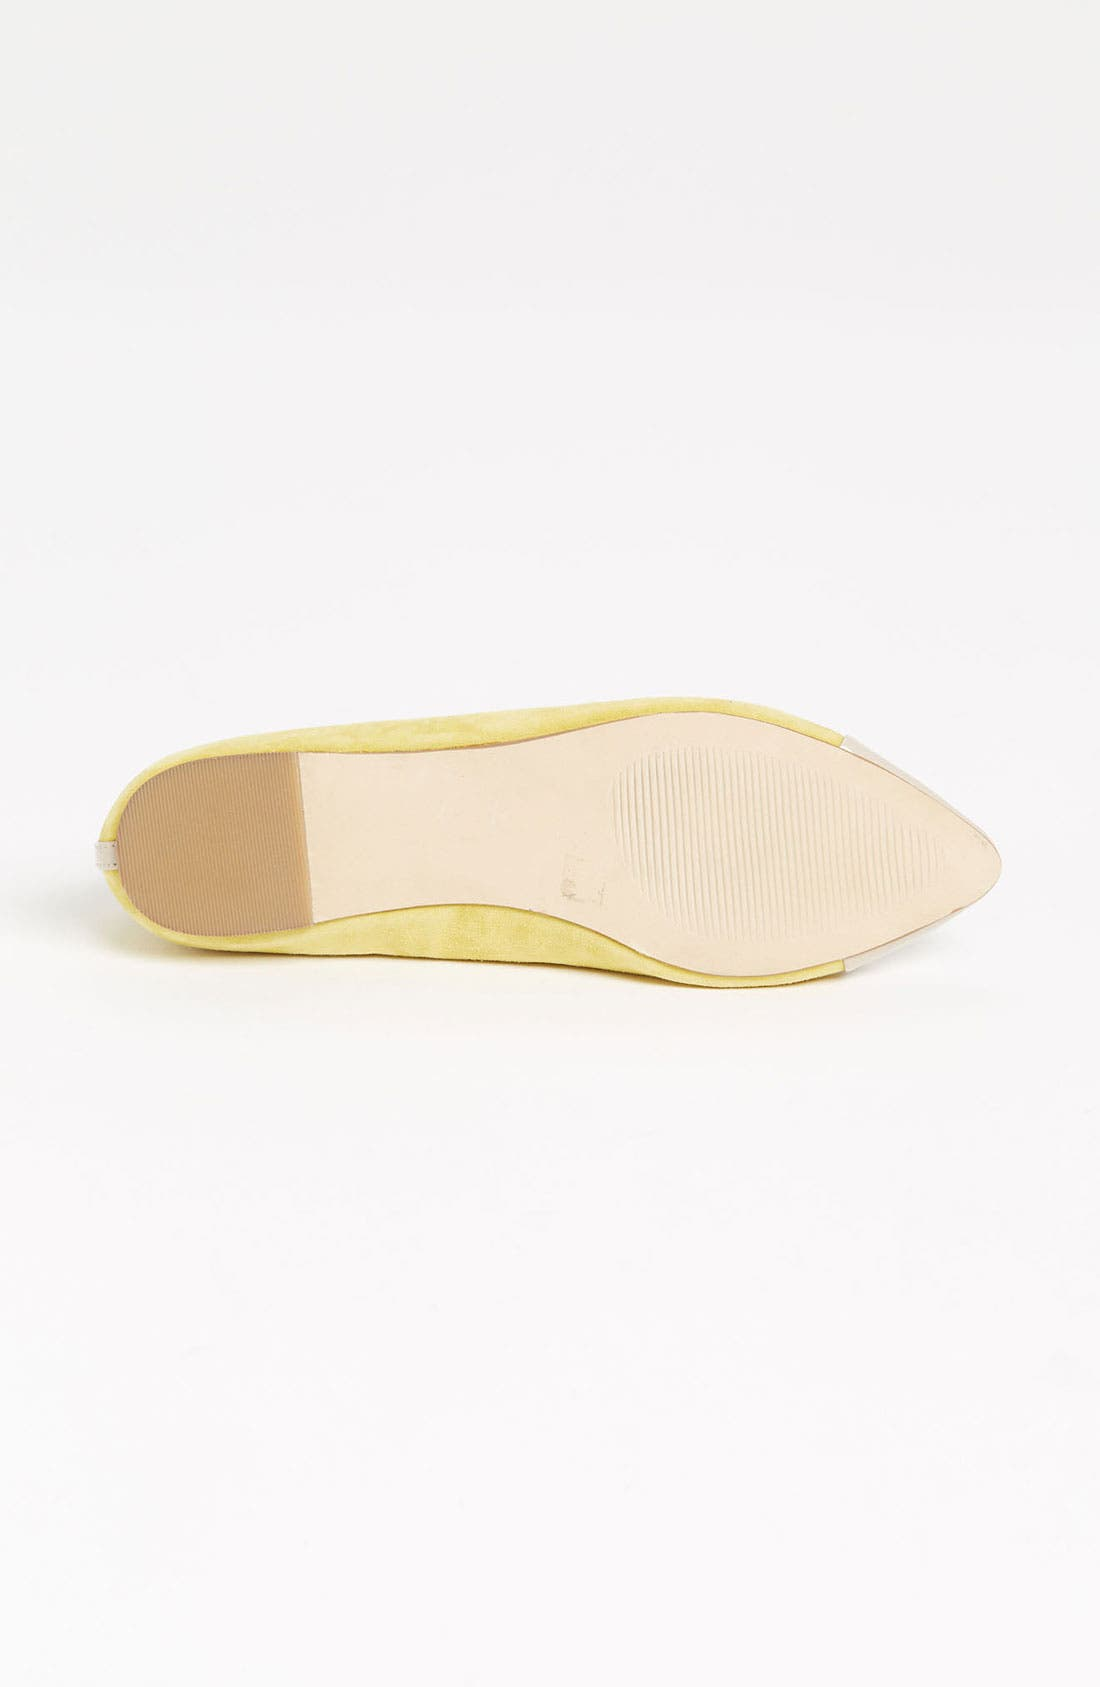 ,                             Julianne Hough for Sole Society 'Addy' Flat,                             Alternate thumbnail 30, color,                             330